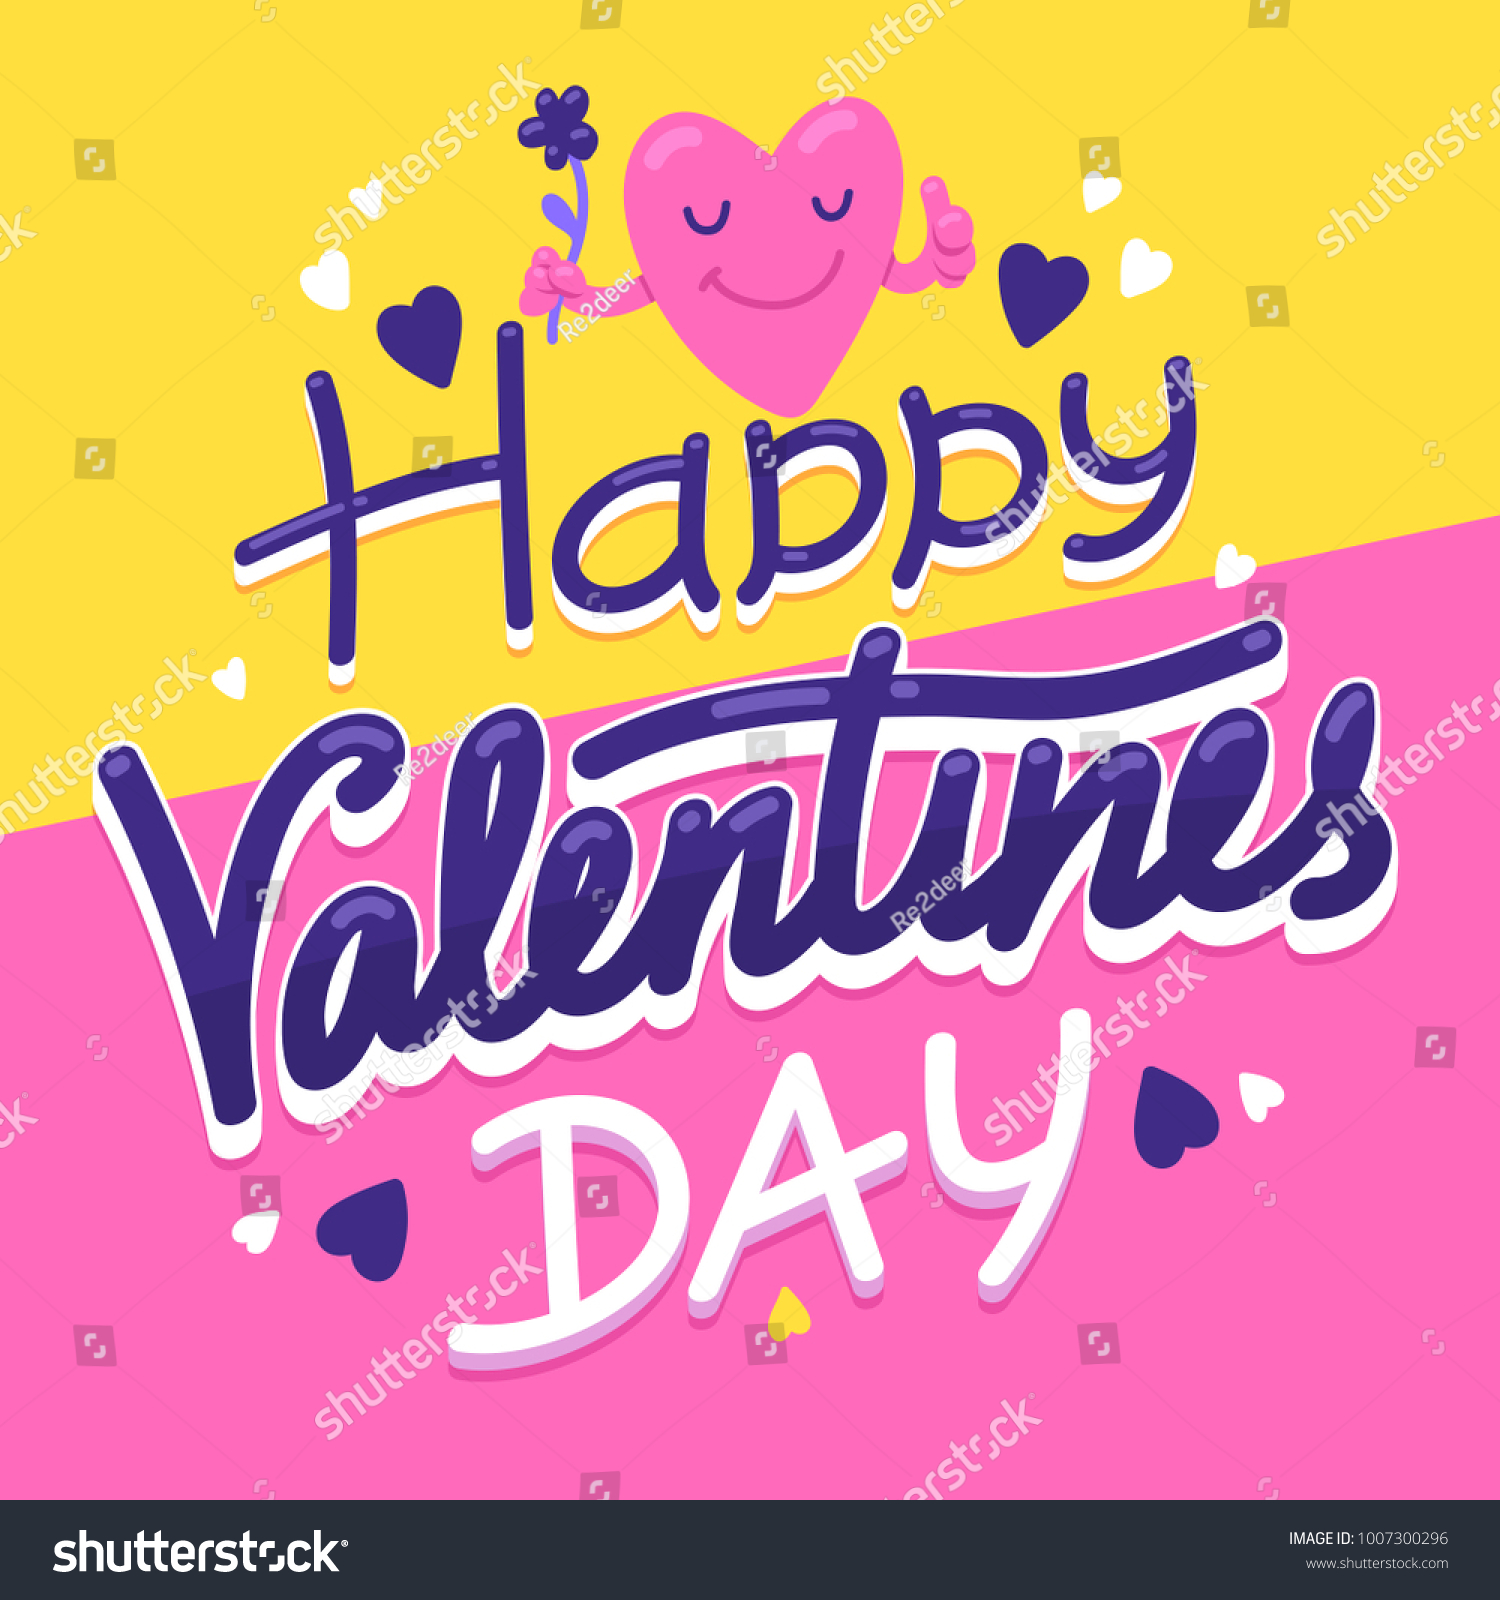 Happy Valentines Day Post Card Greeting Stock Vector 1007300296